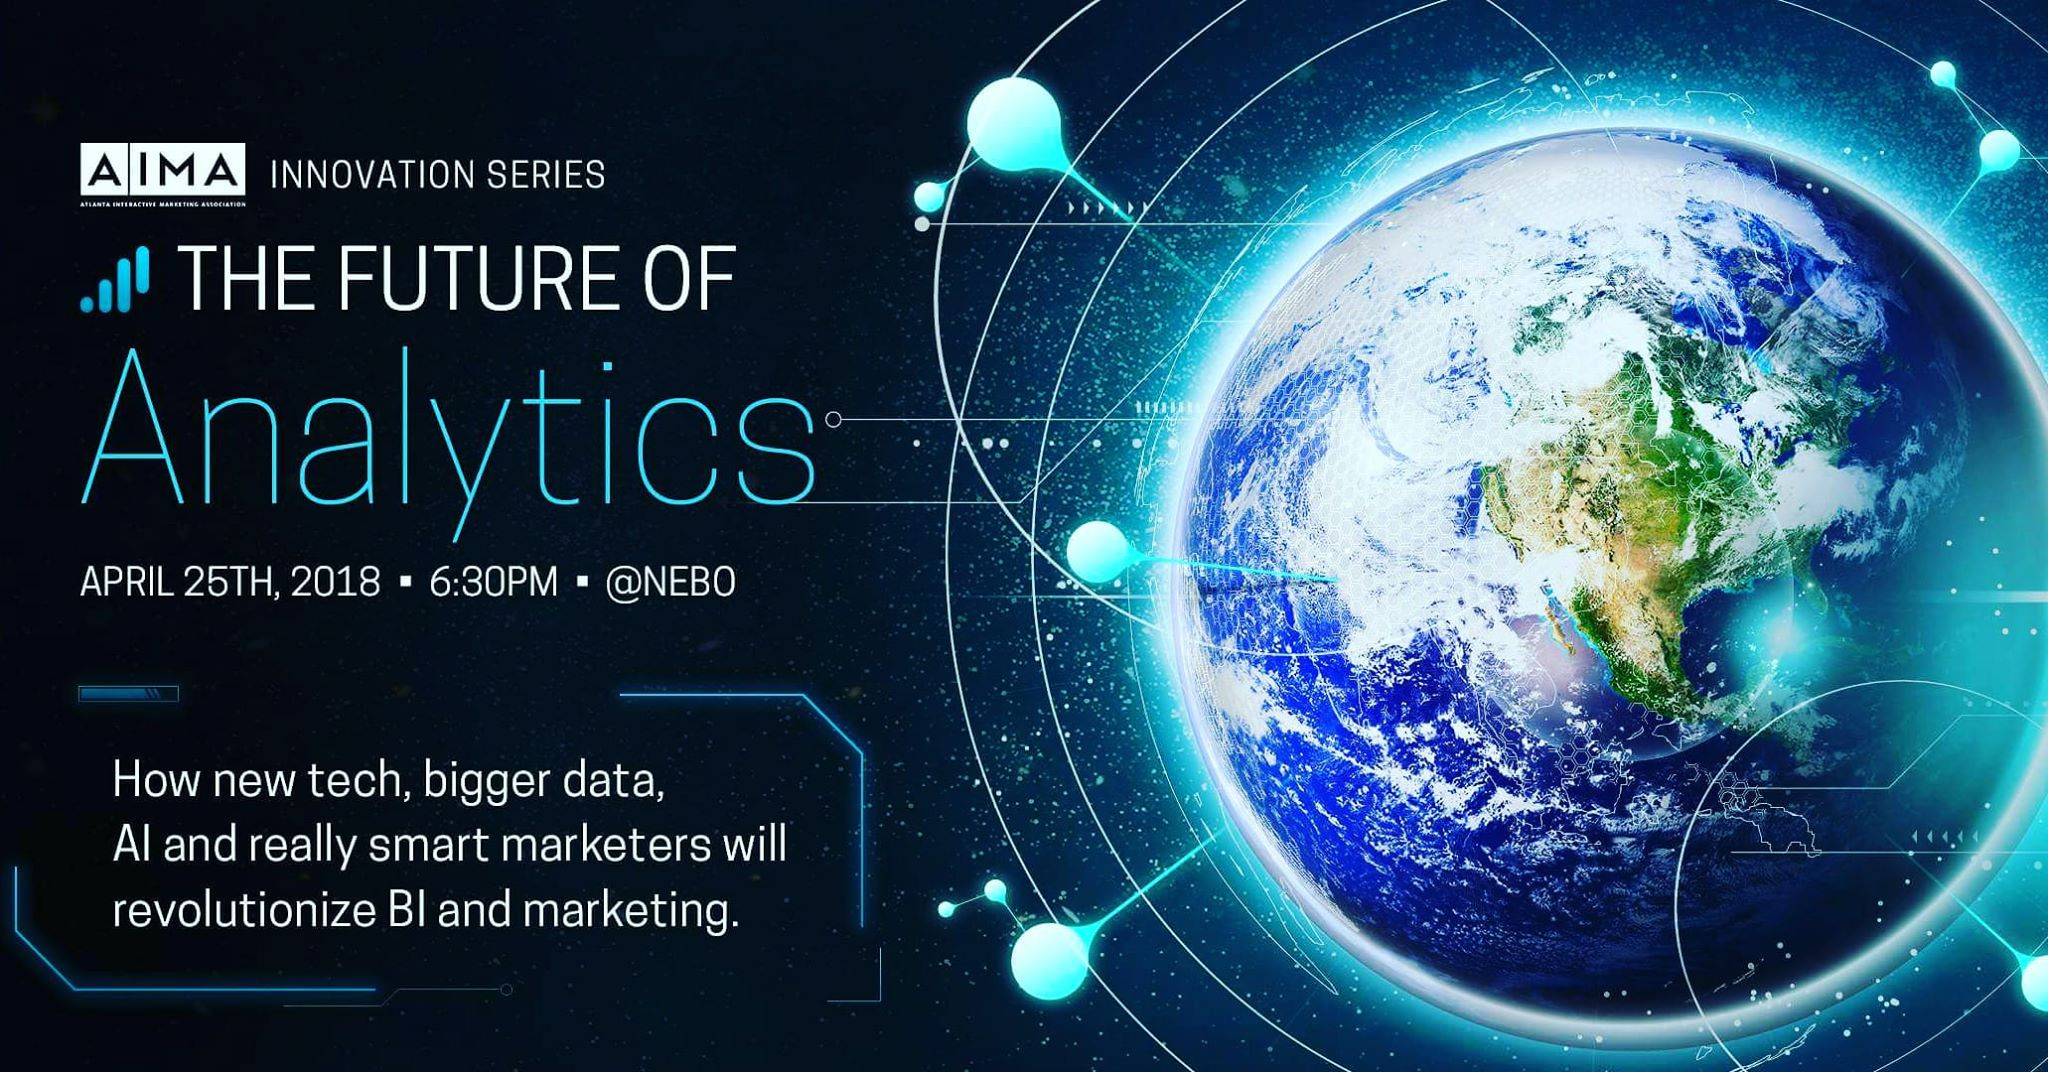 the future of analytics and AI AIMA event poster.jpg